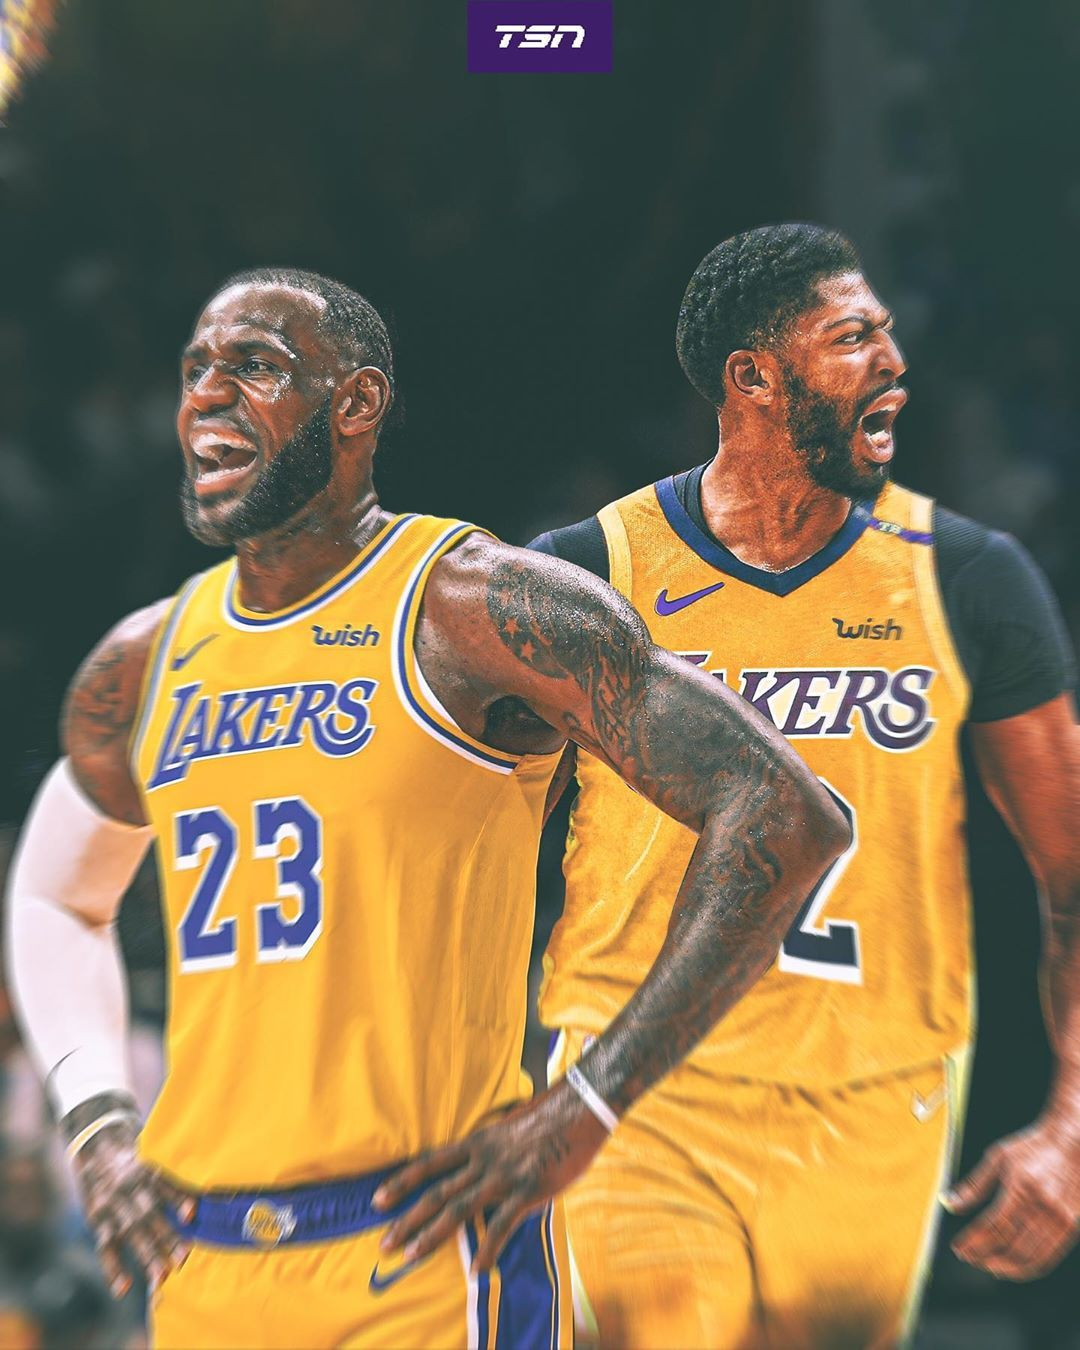 The Lakers Have Themselves A Dynamic Duo Best Nba Players Lebron James Lakers Wallpaper